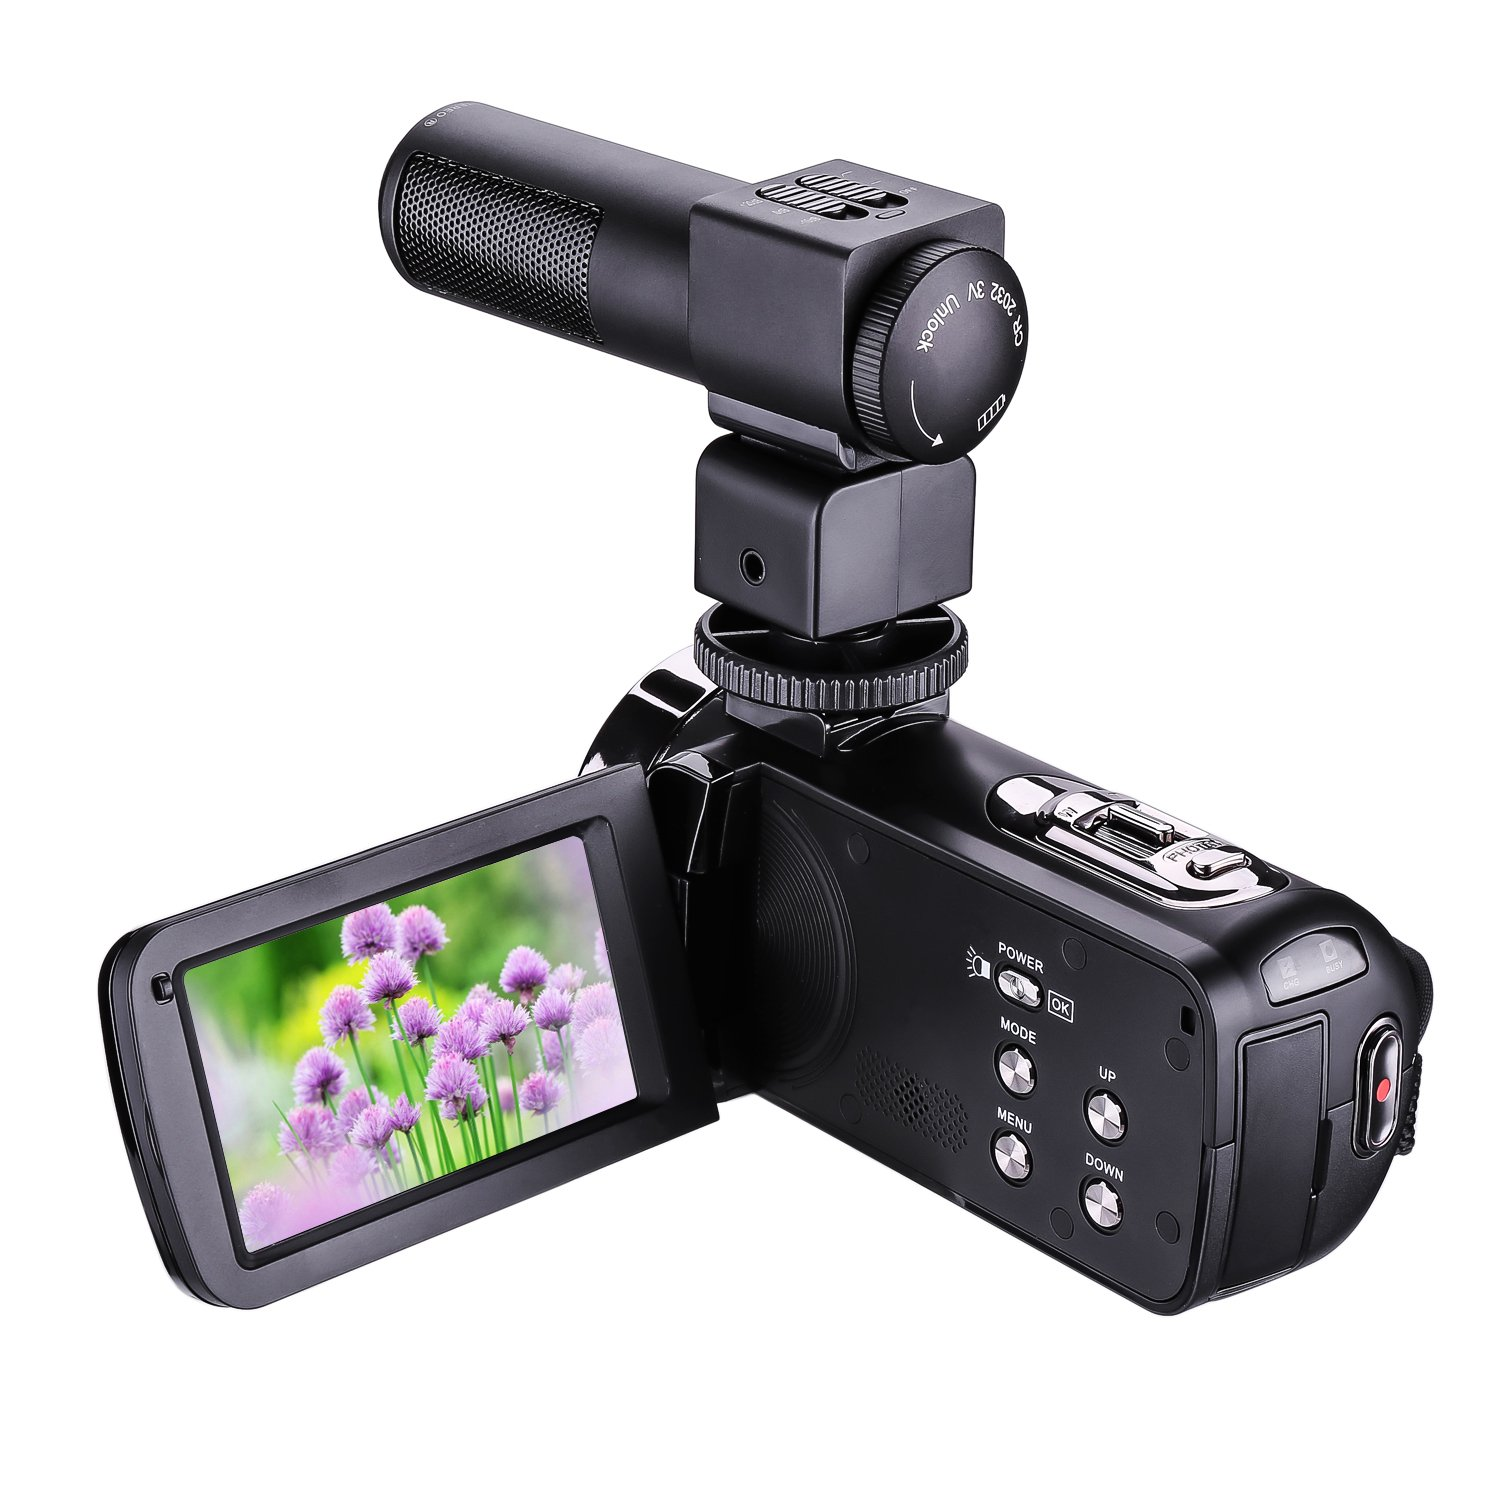 Video Camera,Bigaint HDV-301M Night Vision 1080P 16X Digital Zoom Camcorder 3 Inch LCD HDV Touch Screen Portable Video Camcorder With Microphone